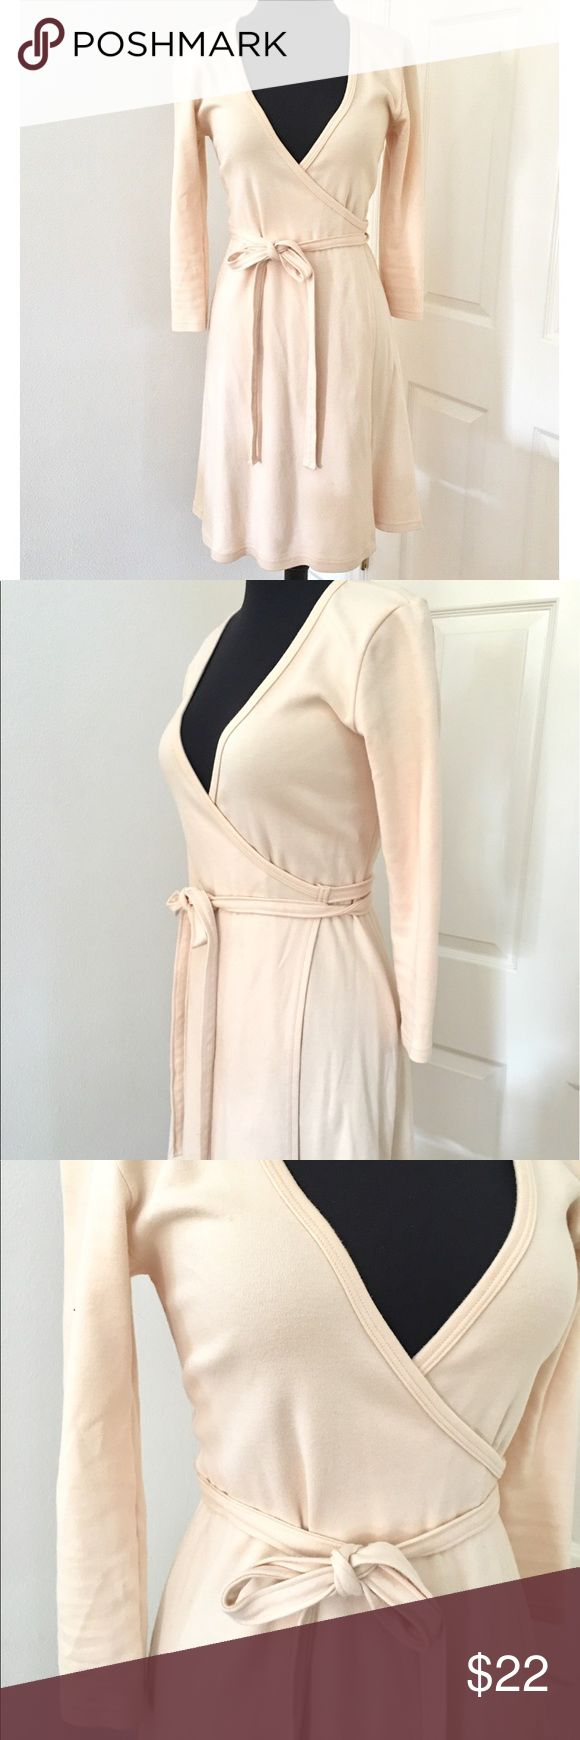 """Rare American Apparel Wrap Dress in Small American apparel dress - rare find. Wrap dress. Long sleeves. Thick, comfortable, interlock 100% cotton in versatile off white shade. Great with boots for a more casual look of dress it up with heels. Size S. 36"""" long. American Apparel Dresses Long Sleeve"""